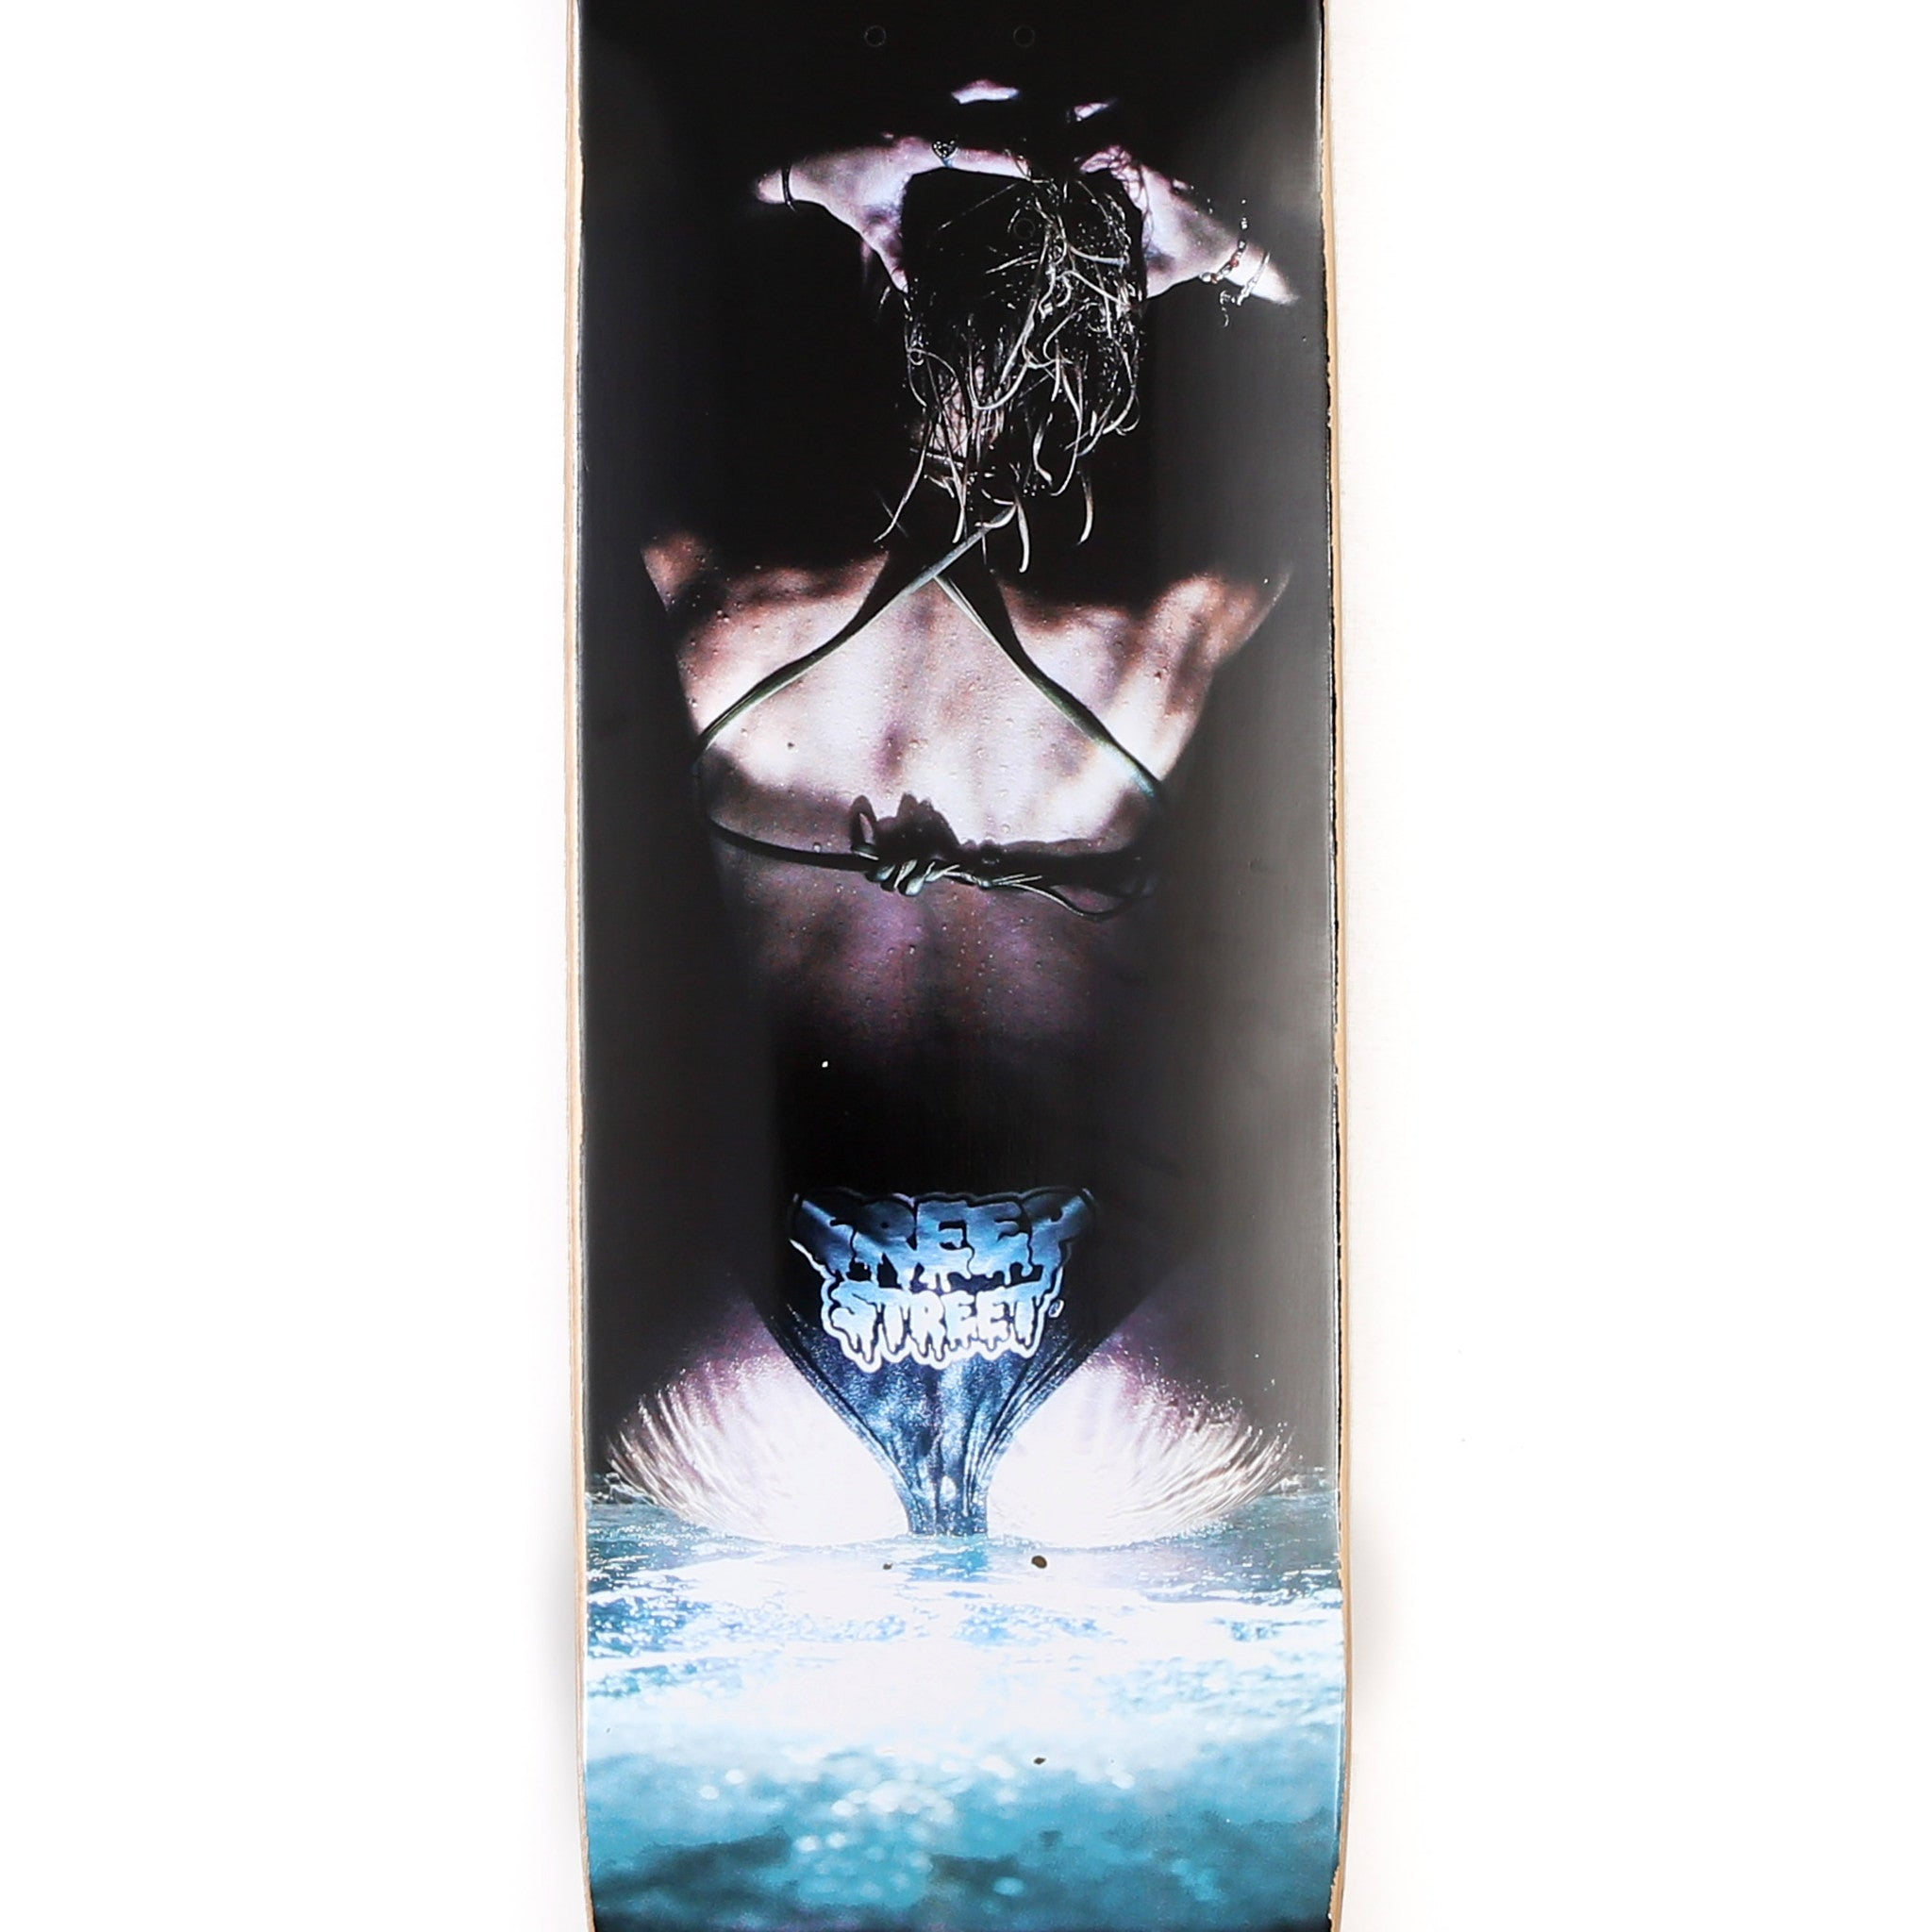 CREEP STREET x SKYBOXX GET WET! SKATEBOARD DECK